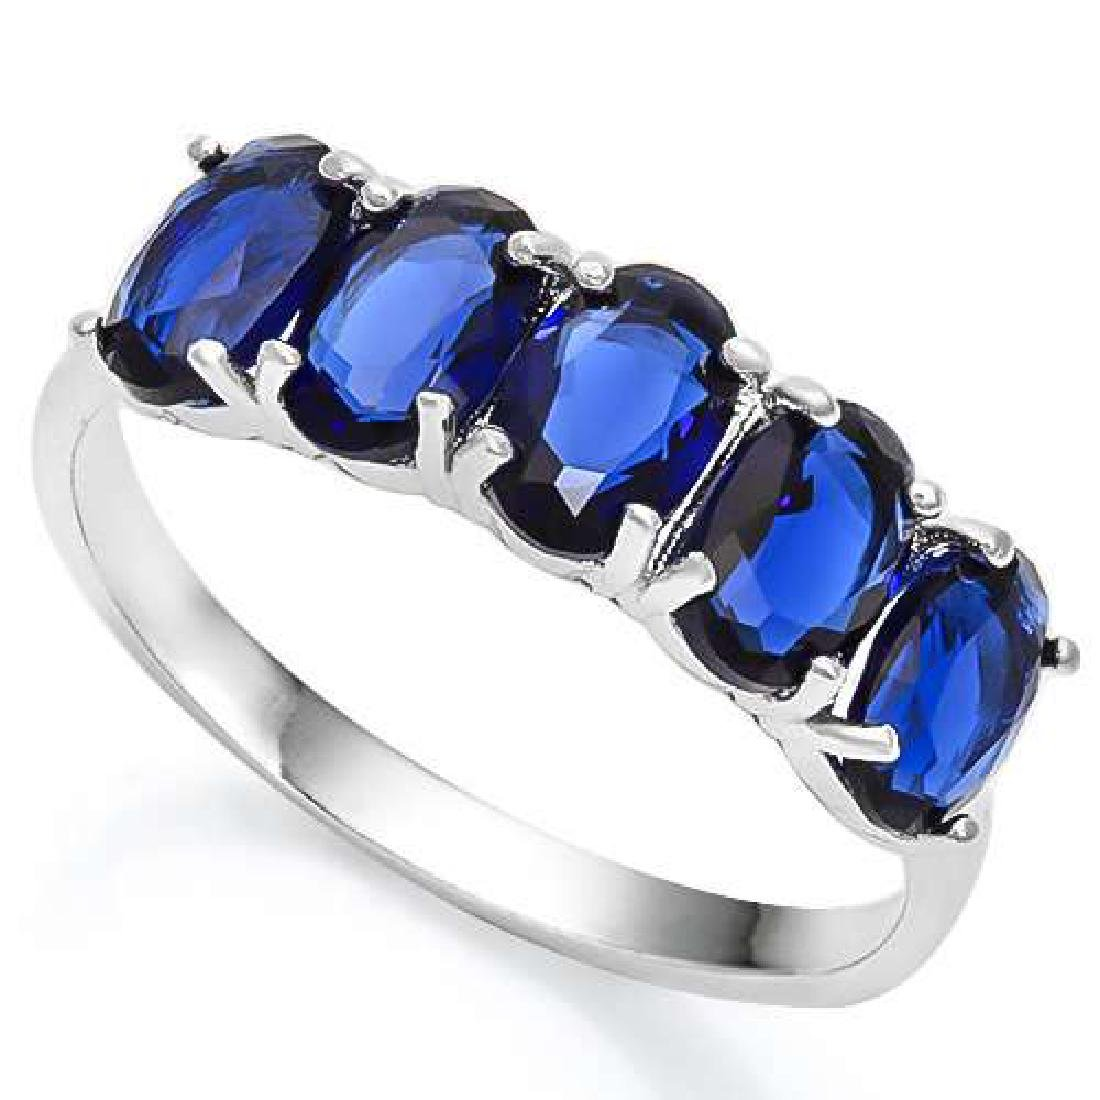 2.00 CTW CREATED BLUE SAPPHIRE 925 STERLING SILVER RING